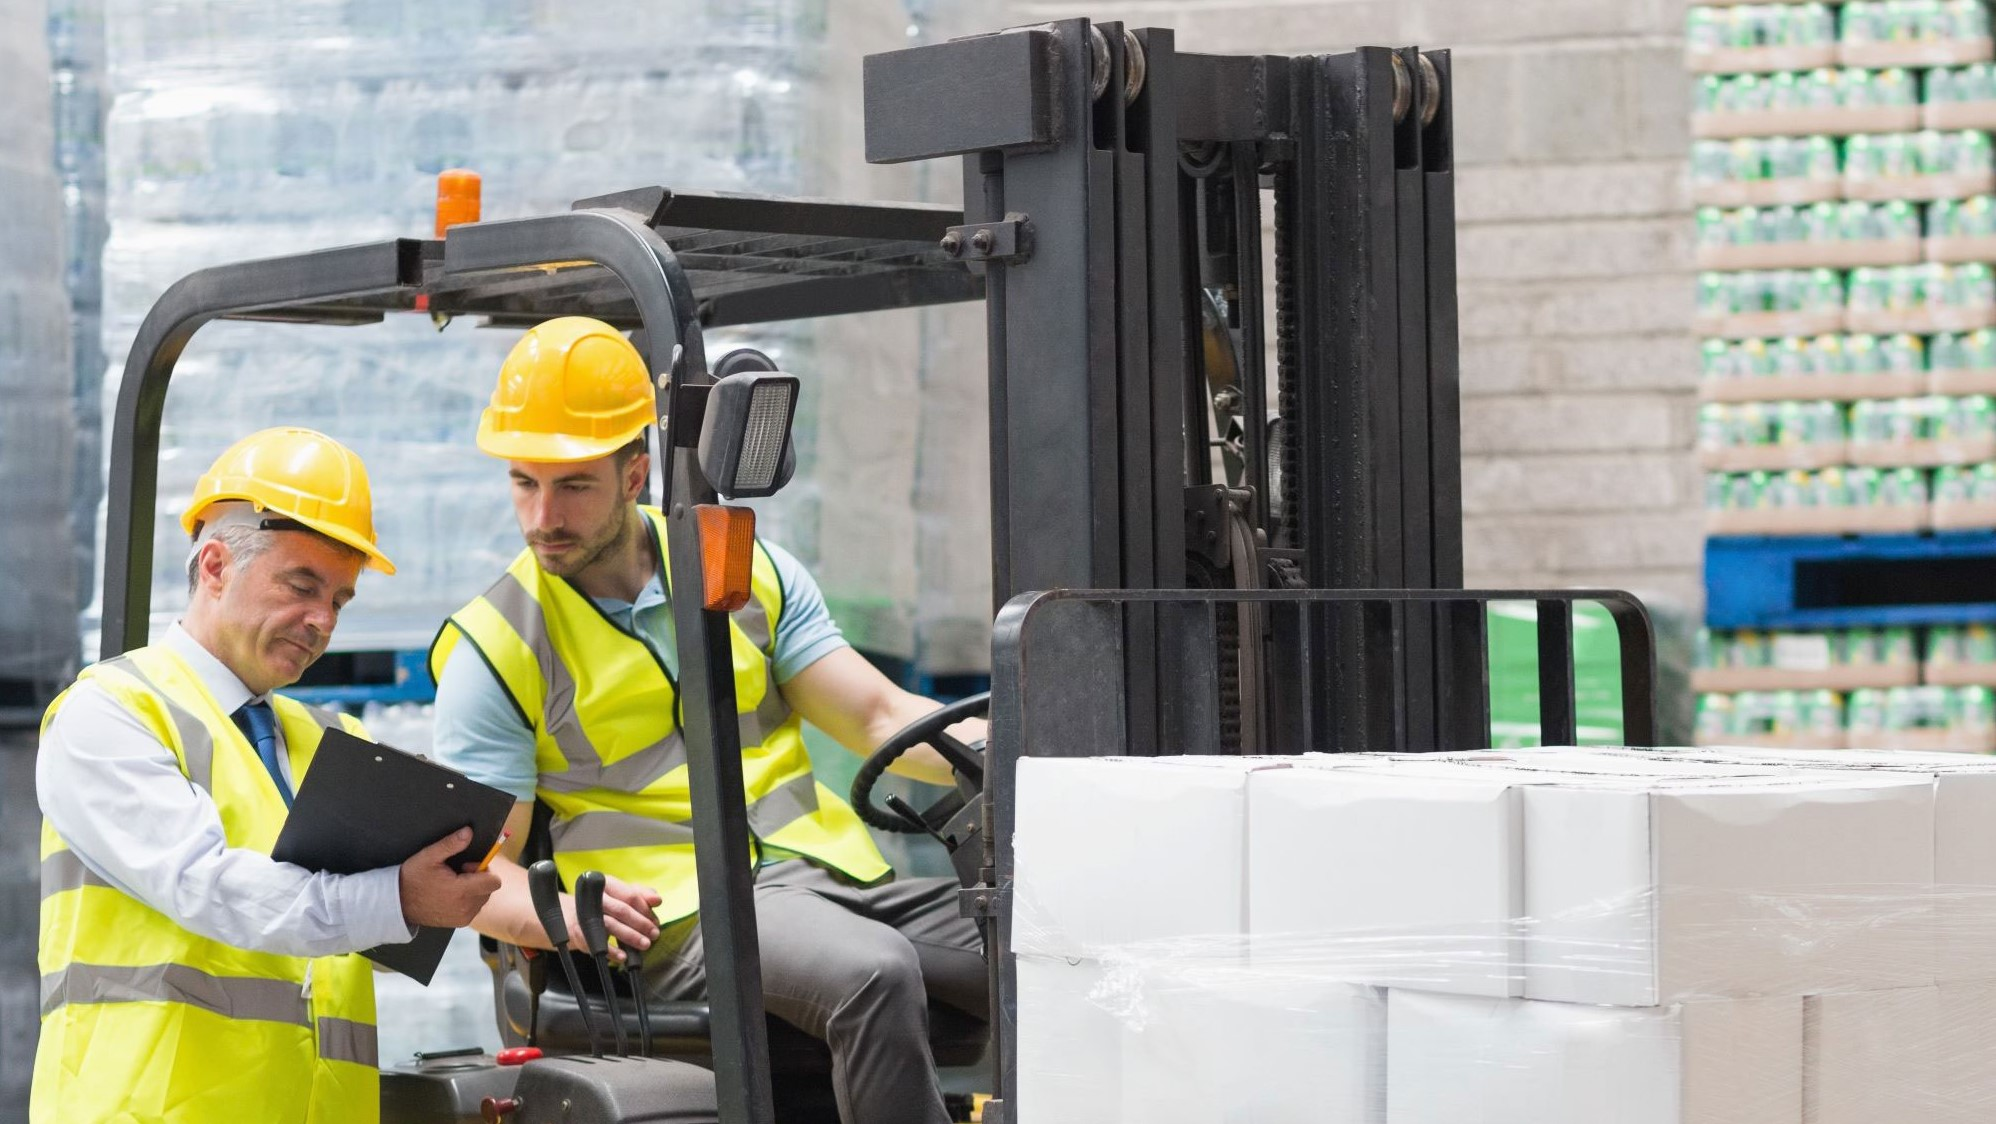 How to Operate a Sit-Down Forklift Safely